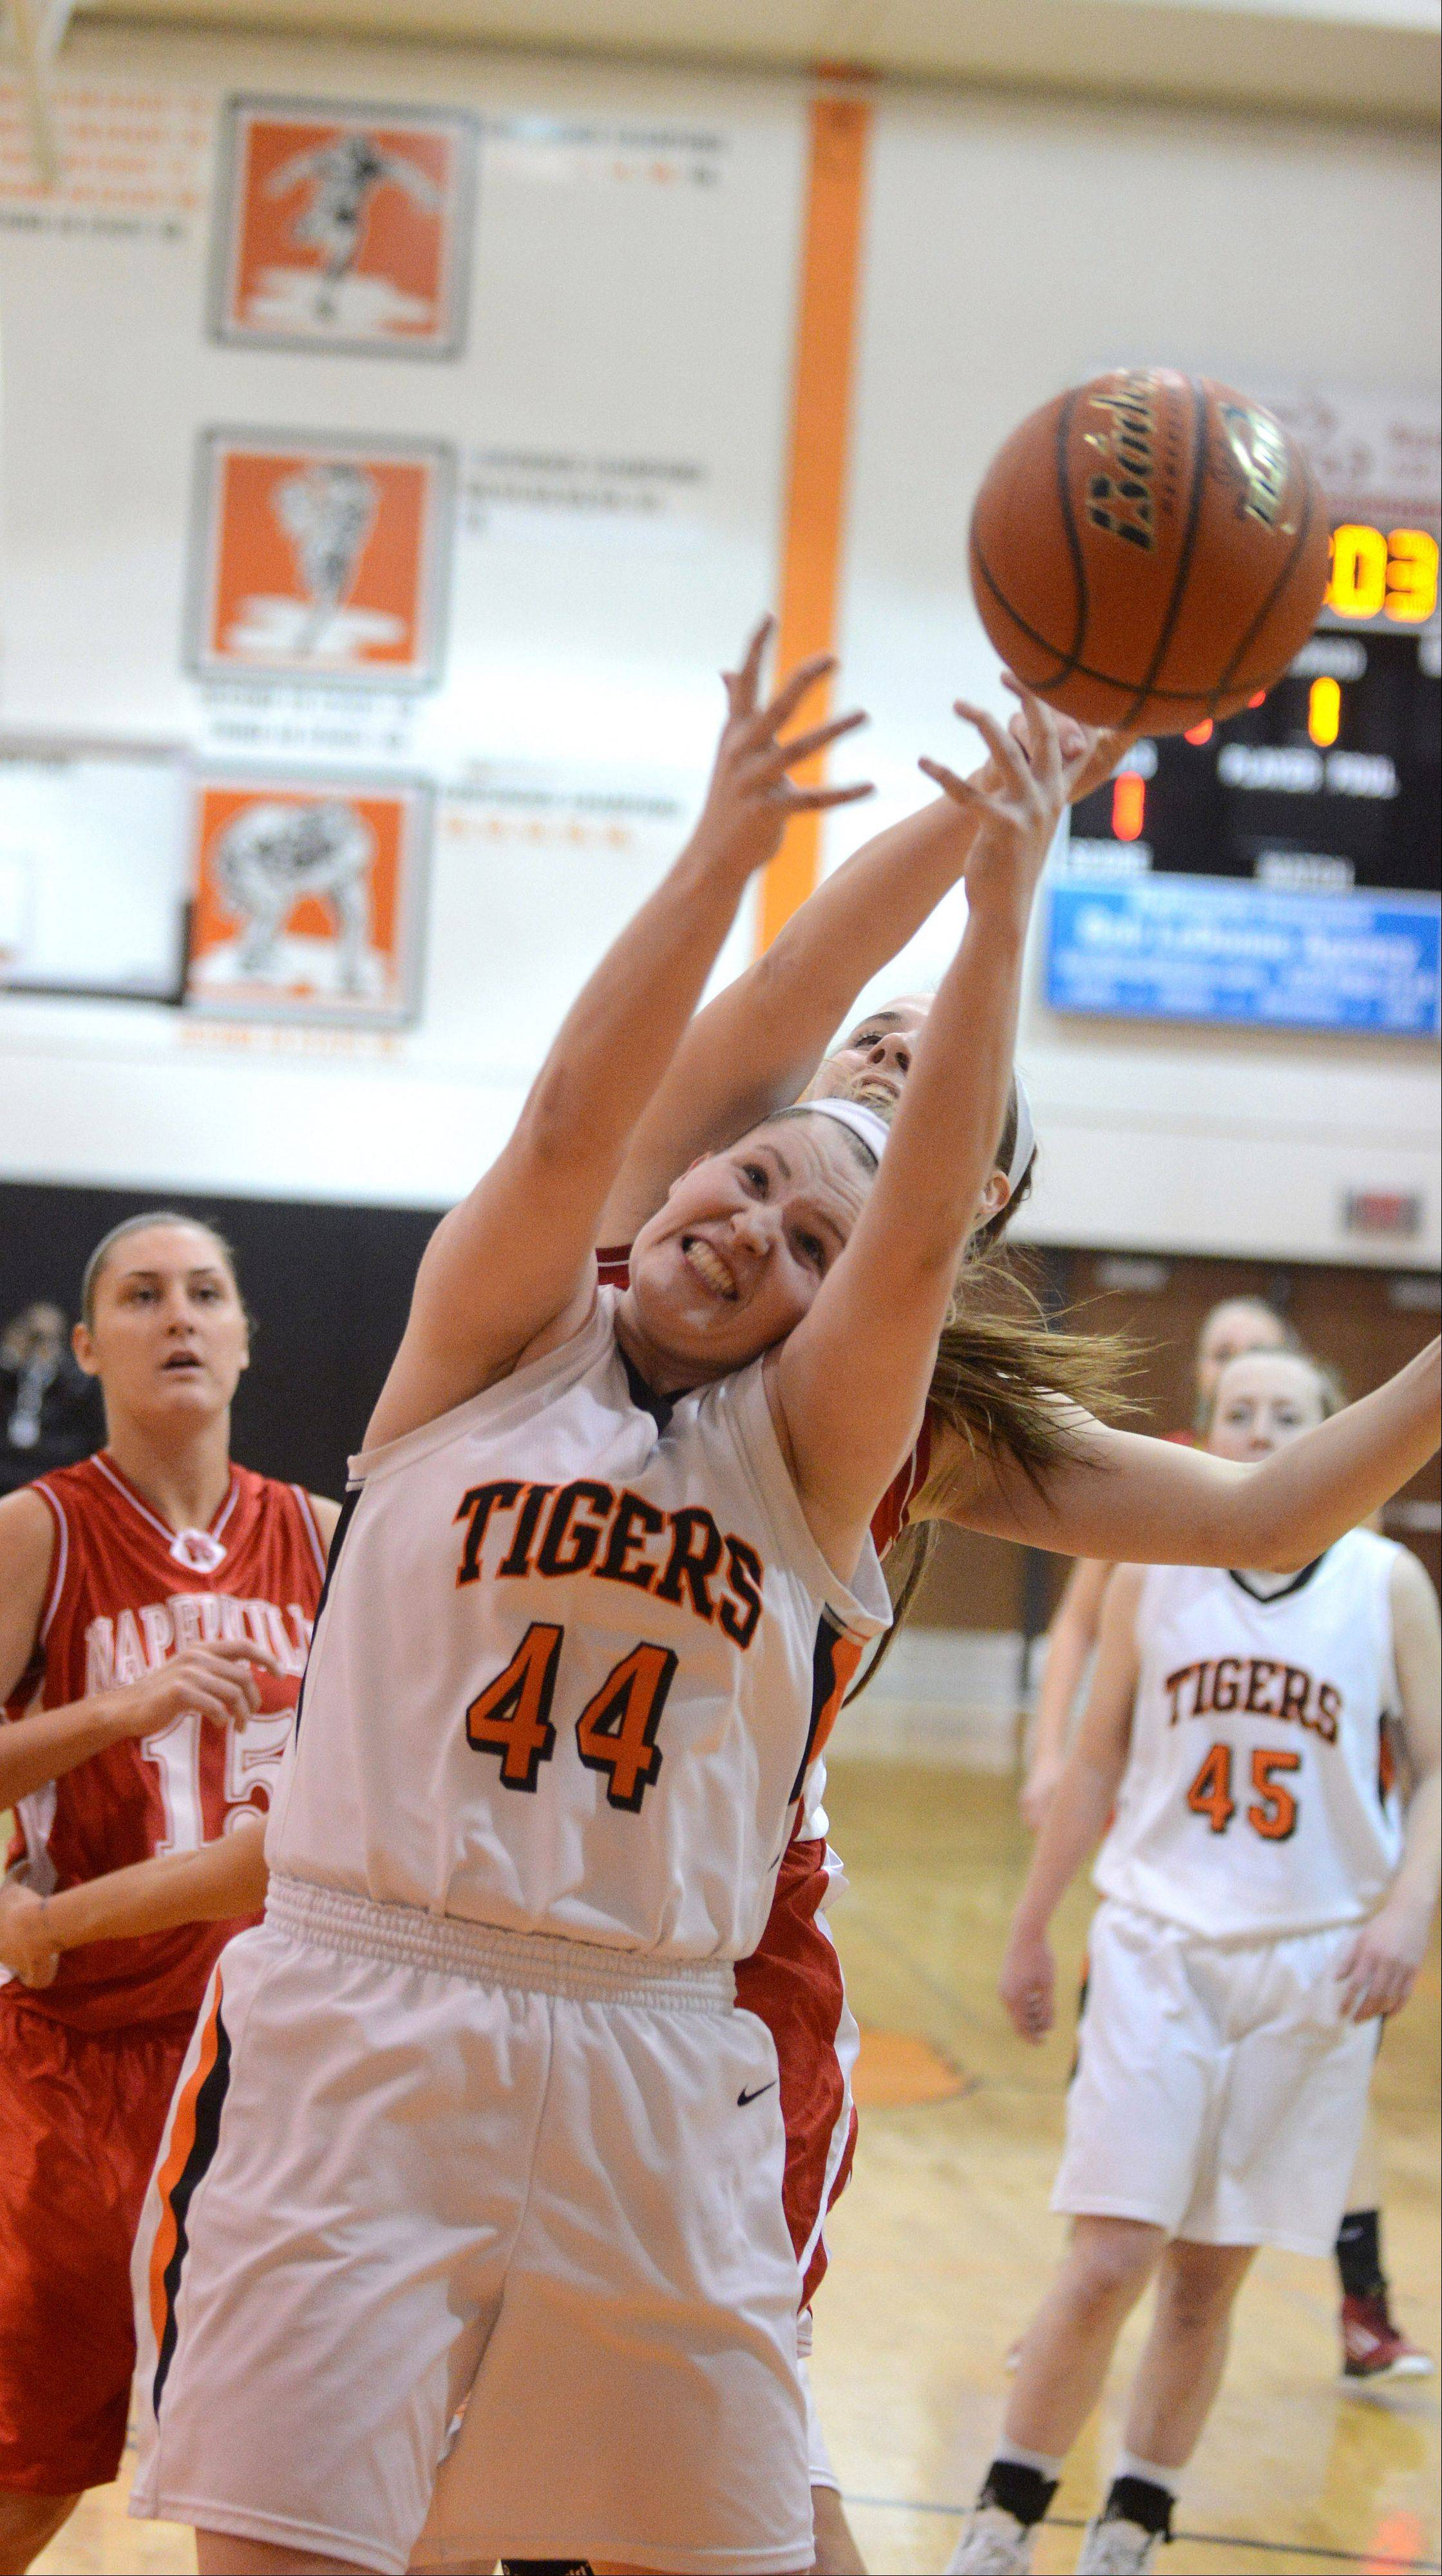 Olivia Linebarger of Wheaton Warrenville south goes up for a rebound during the Naperville Central at Wheaton Warrenville South girls basketball game Thursday.